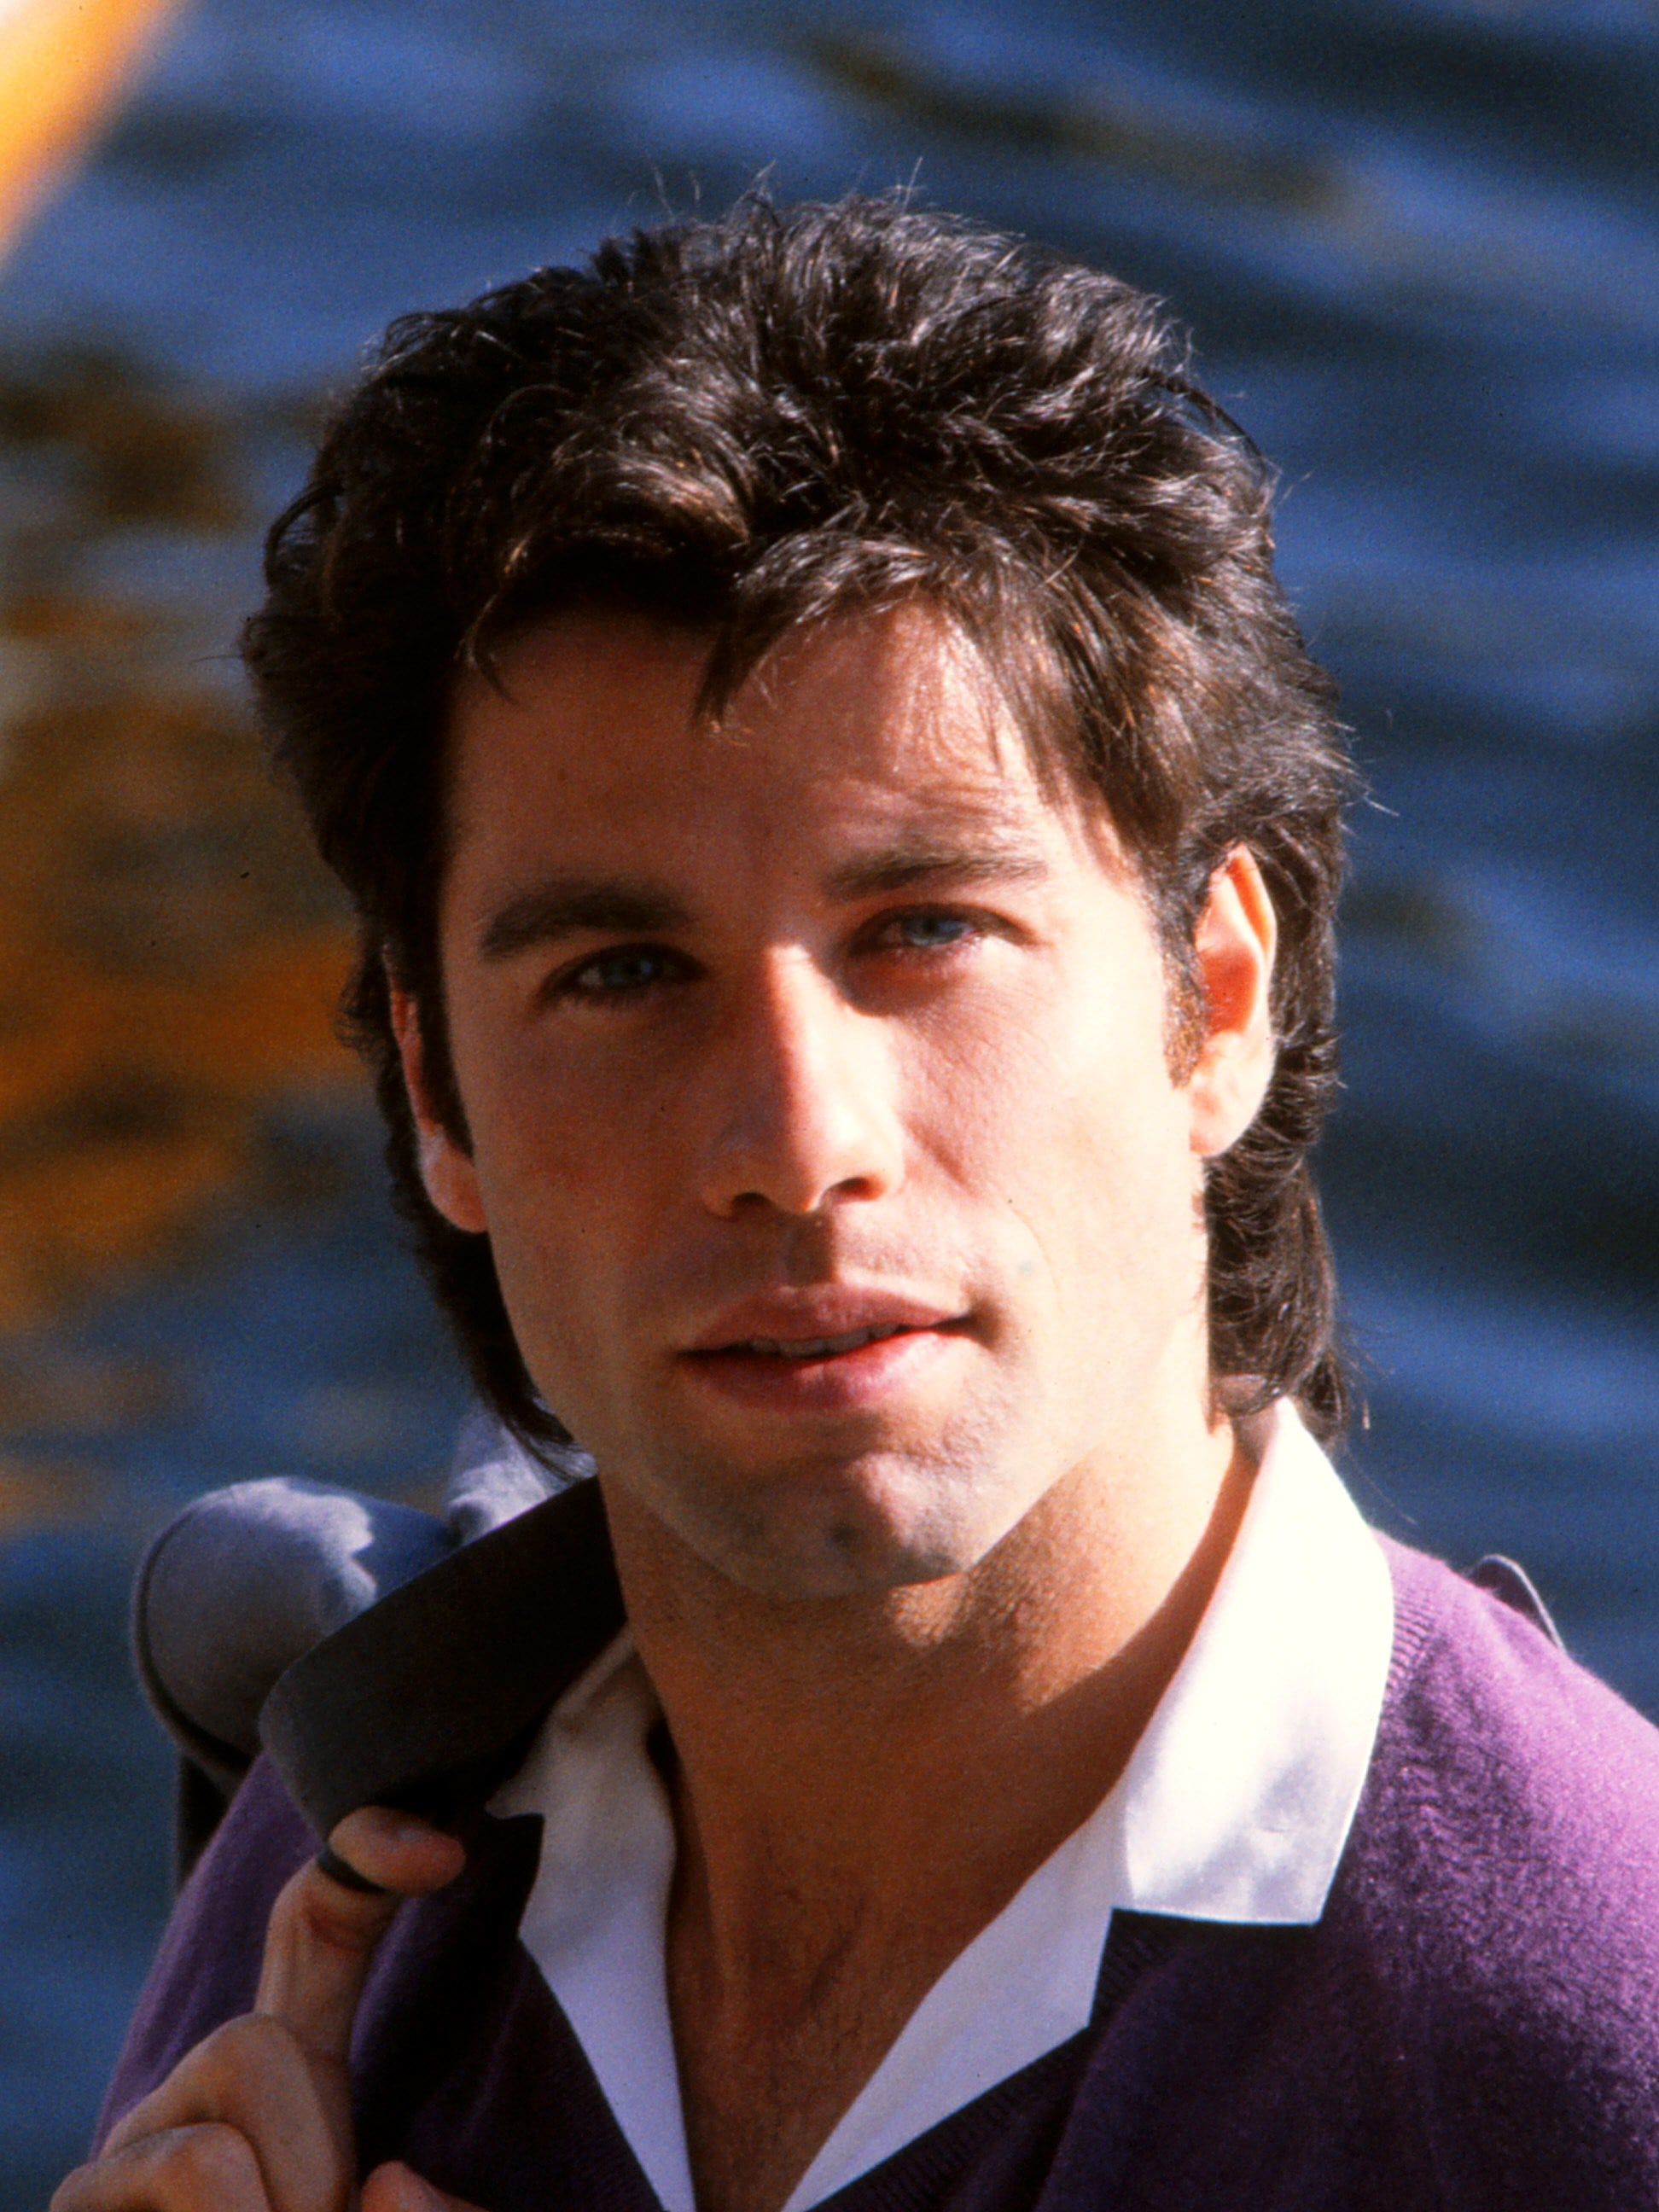 John Travolta Wallpapers